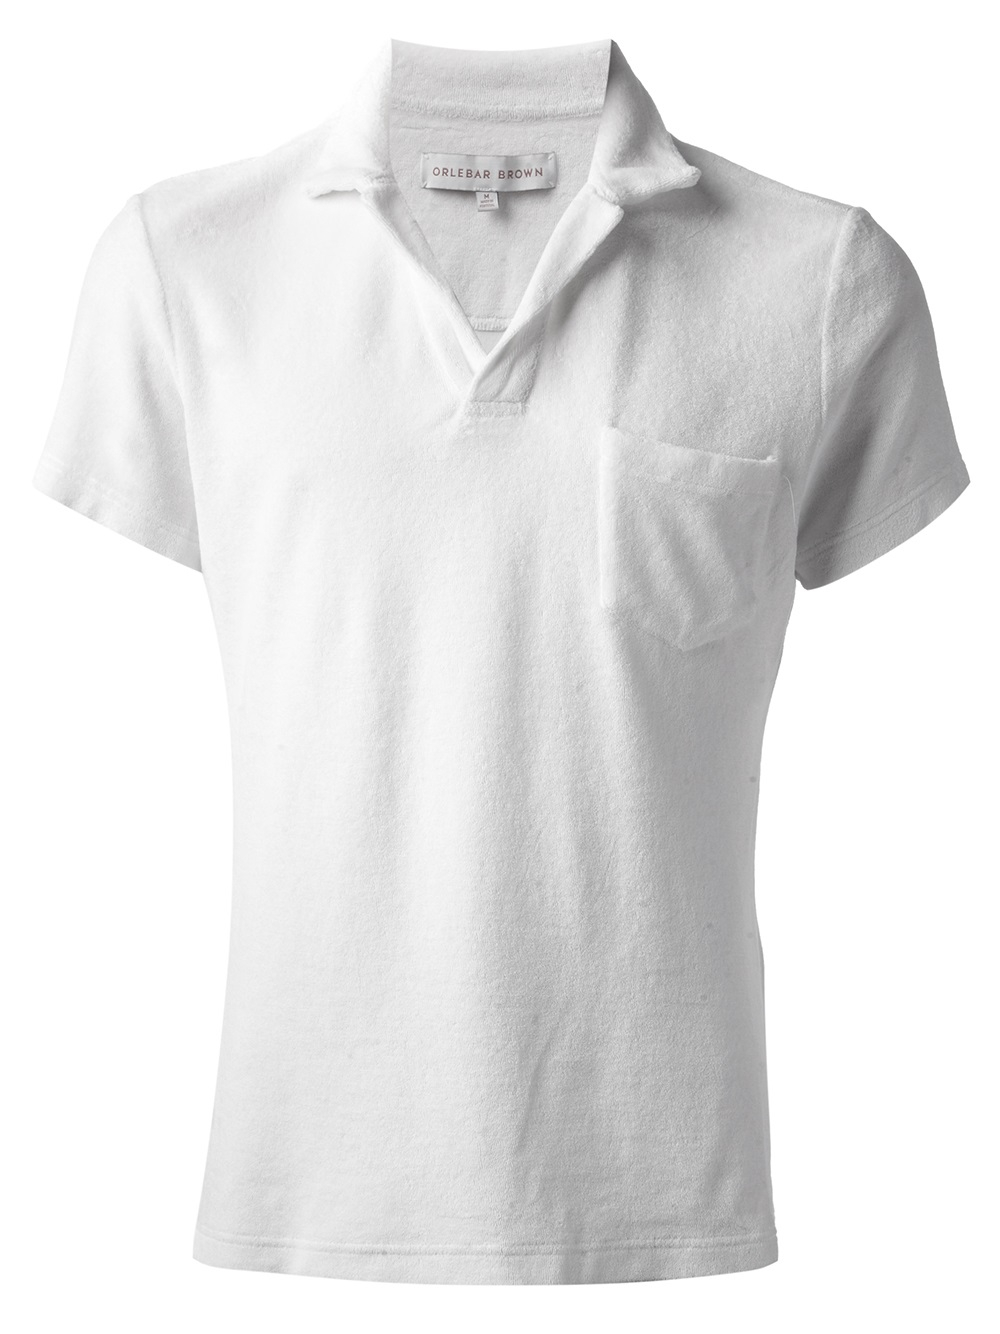 8c97ccc8a39c57 Lyst - Orlebar Brown Terry Polo Shirt in White for Men